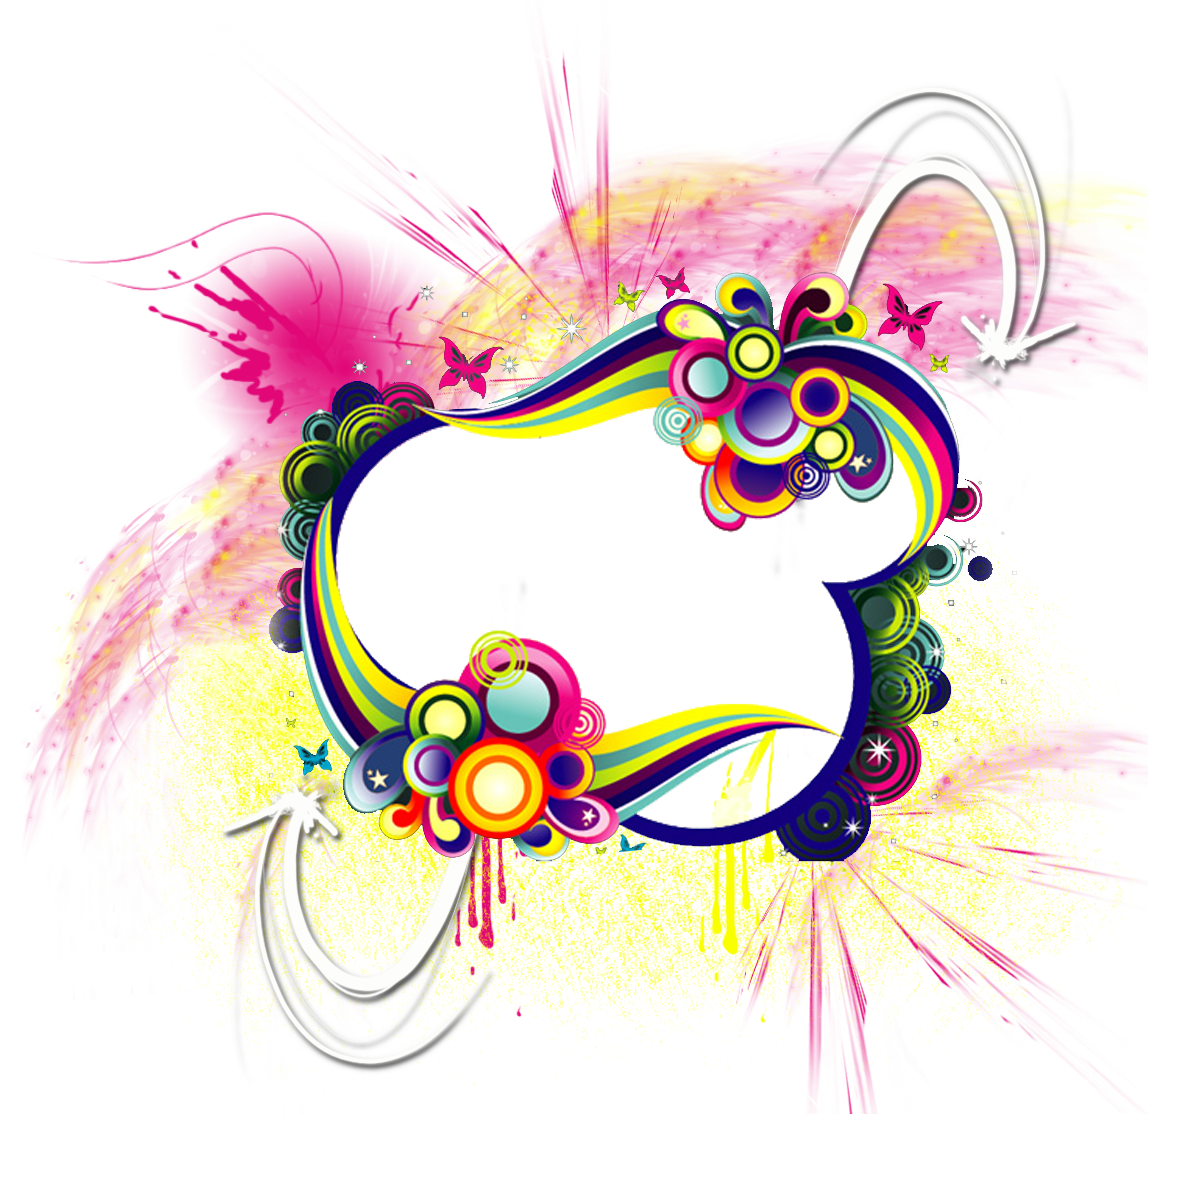 Abstract Design Png